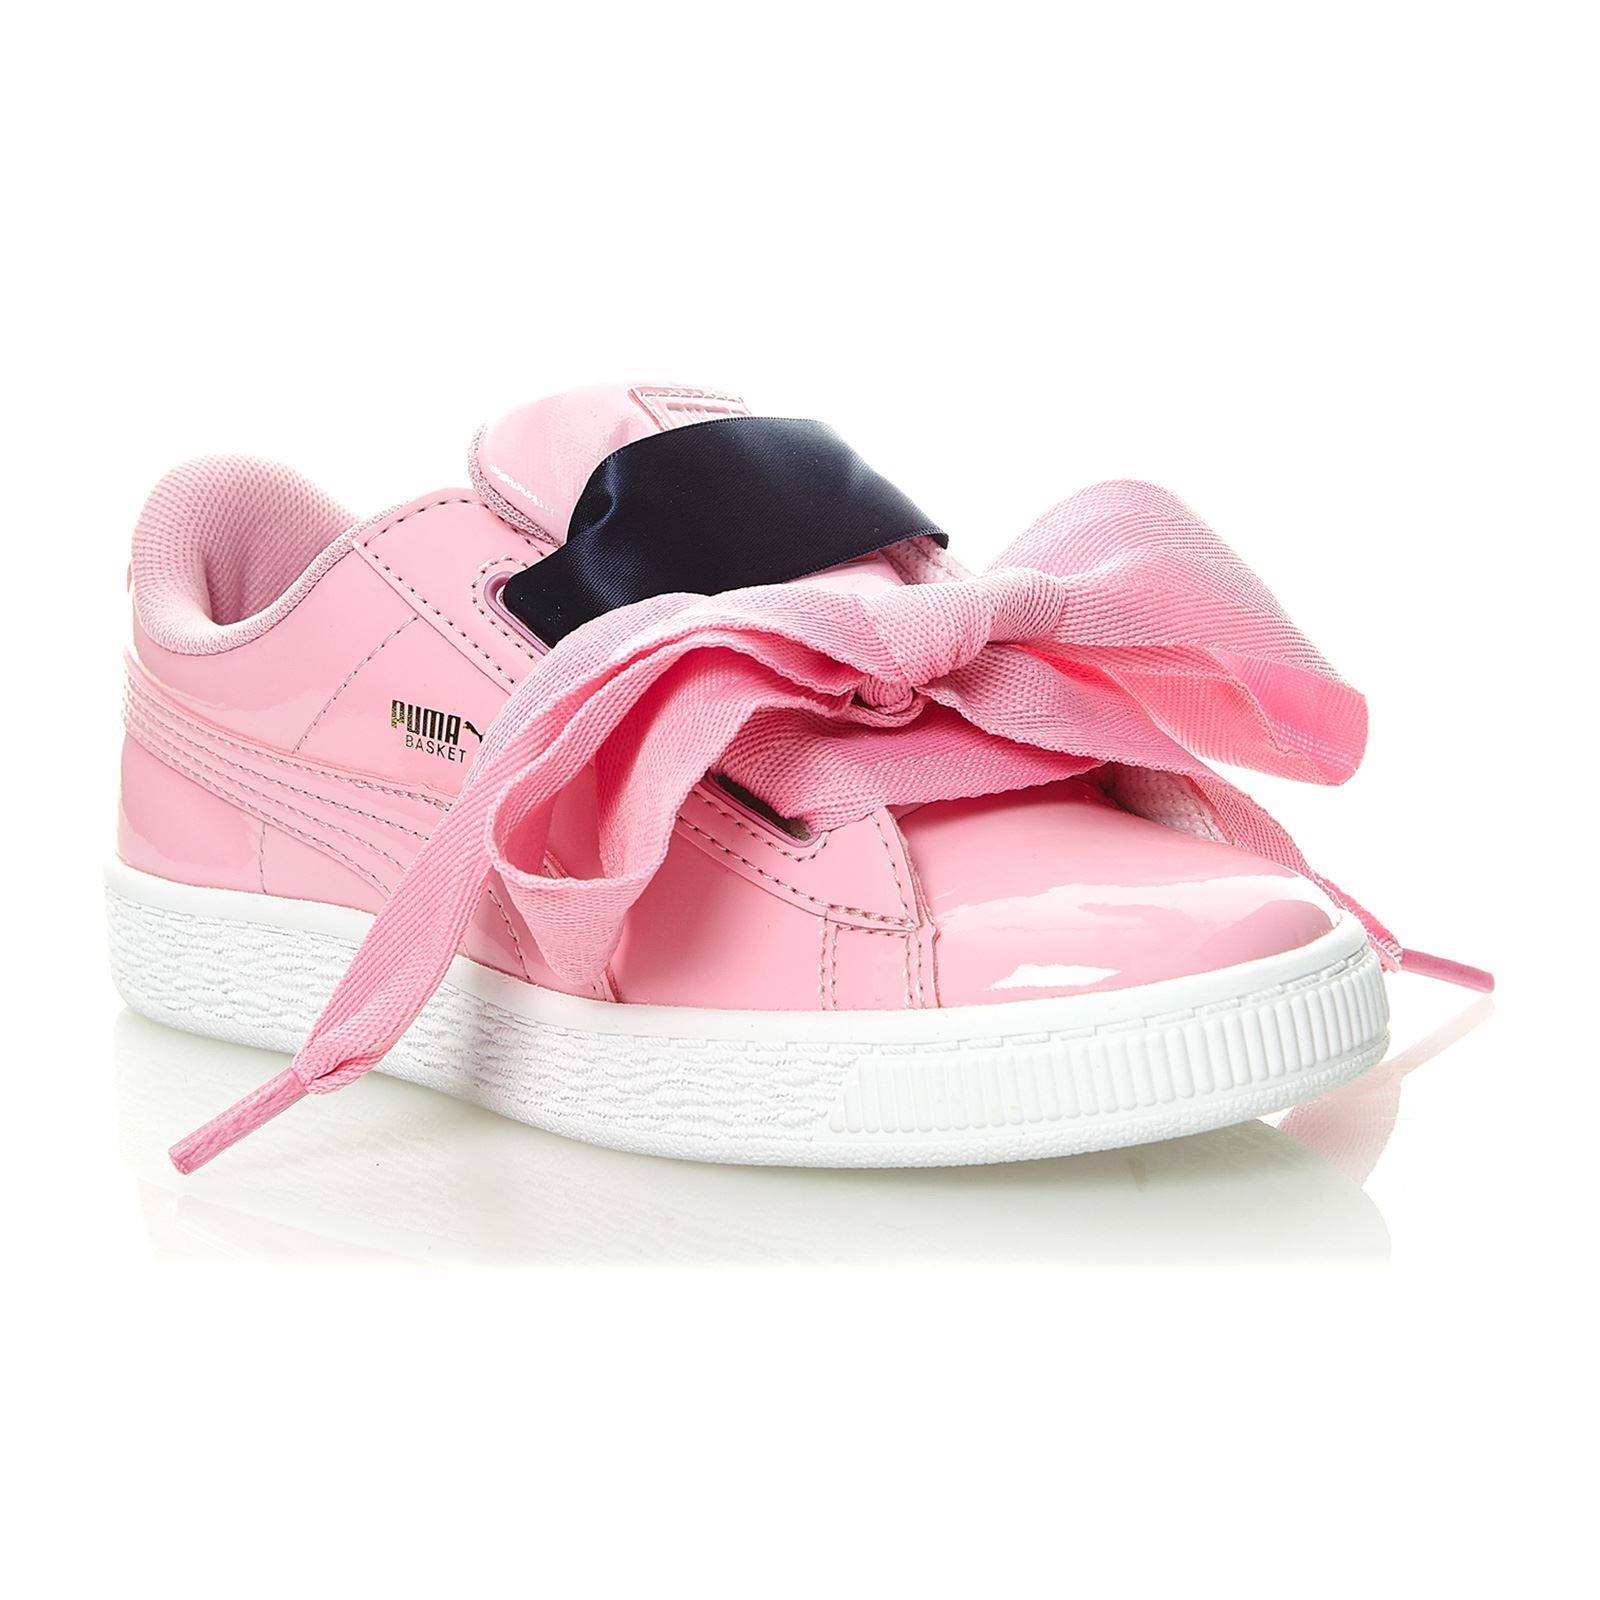 puma heart blanche noeud rose